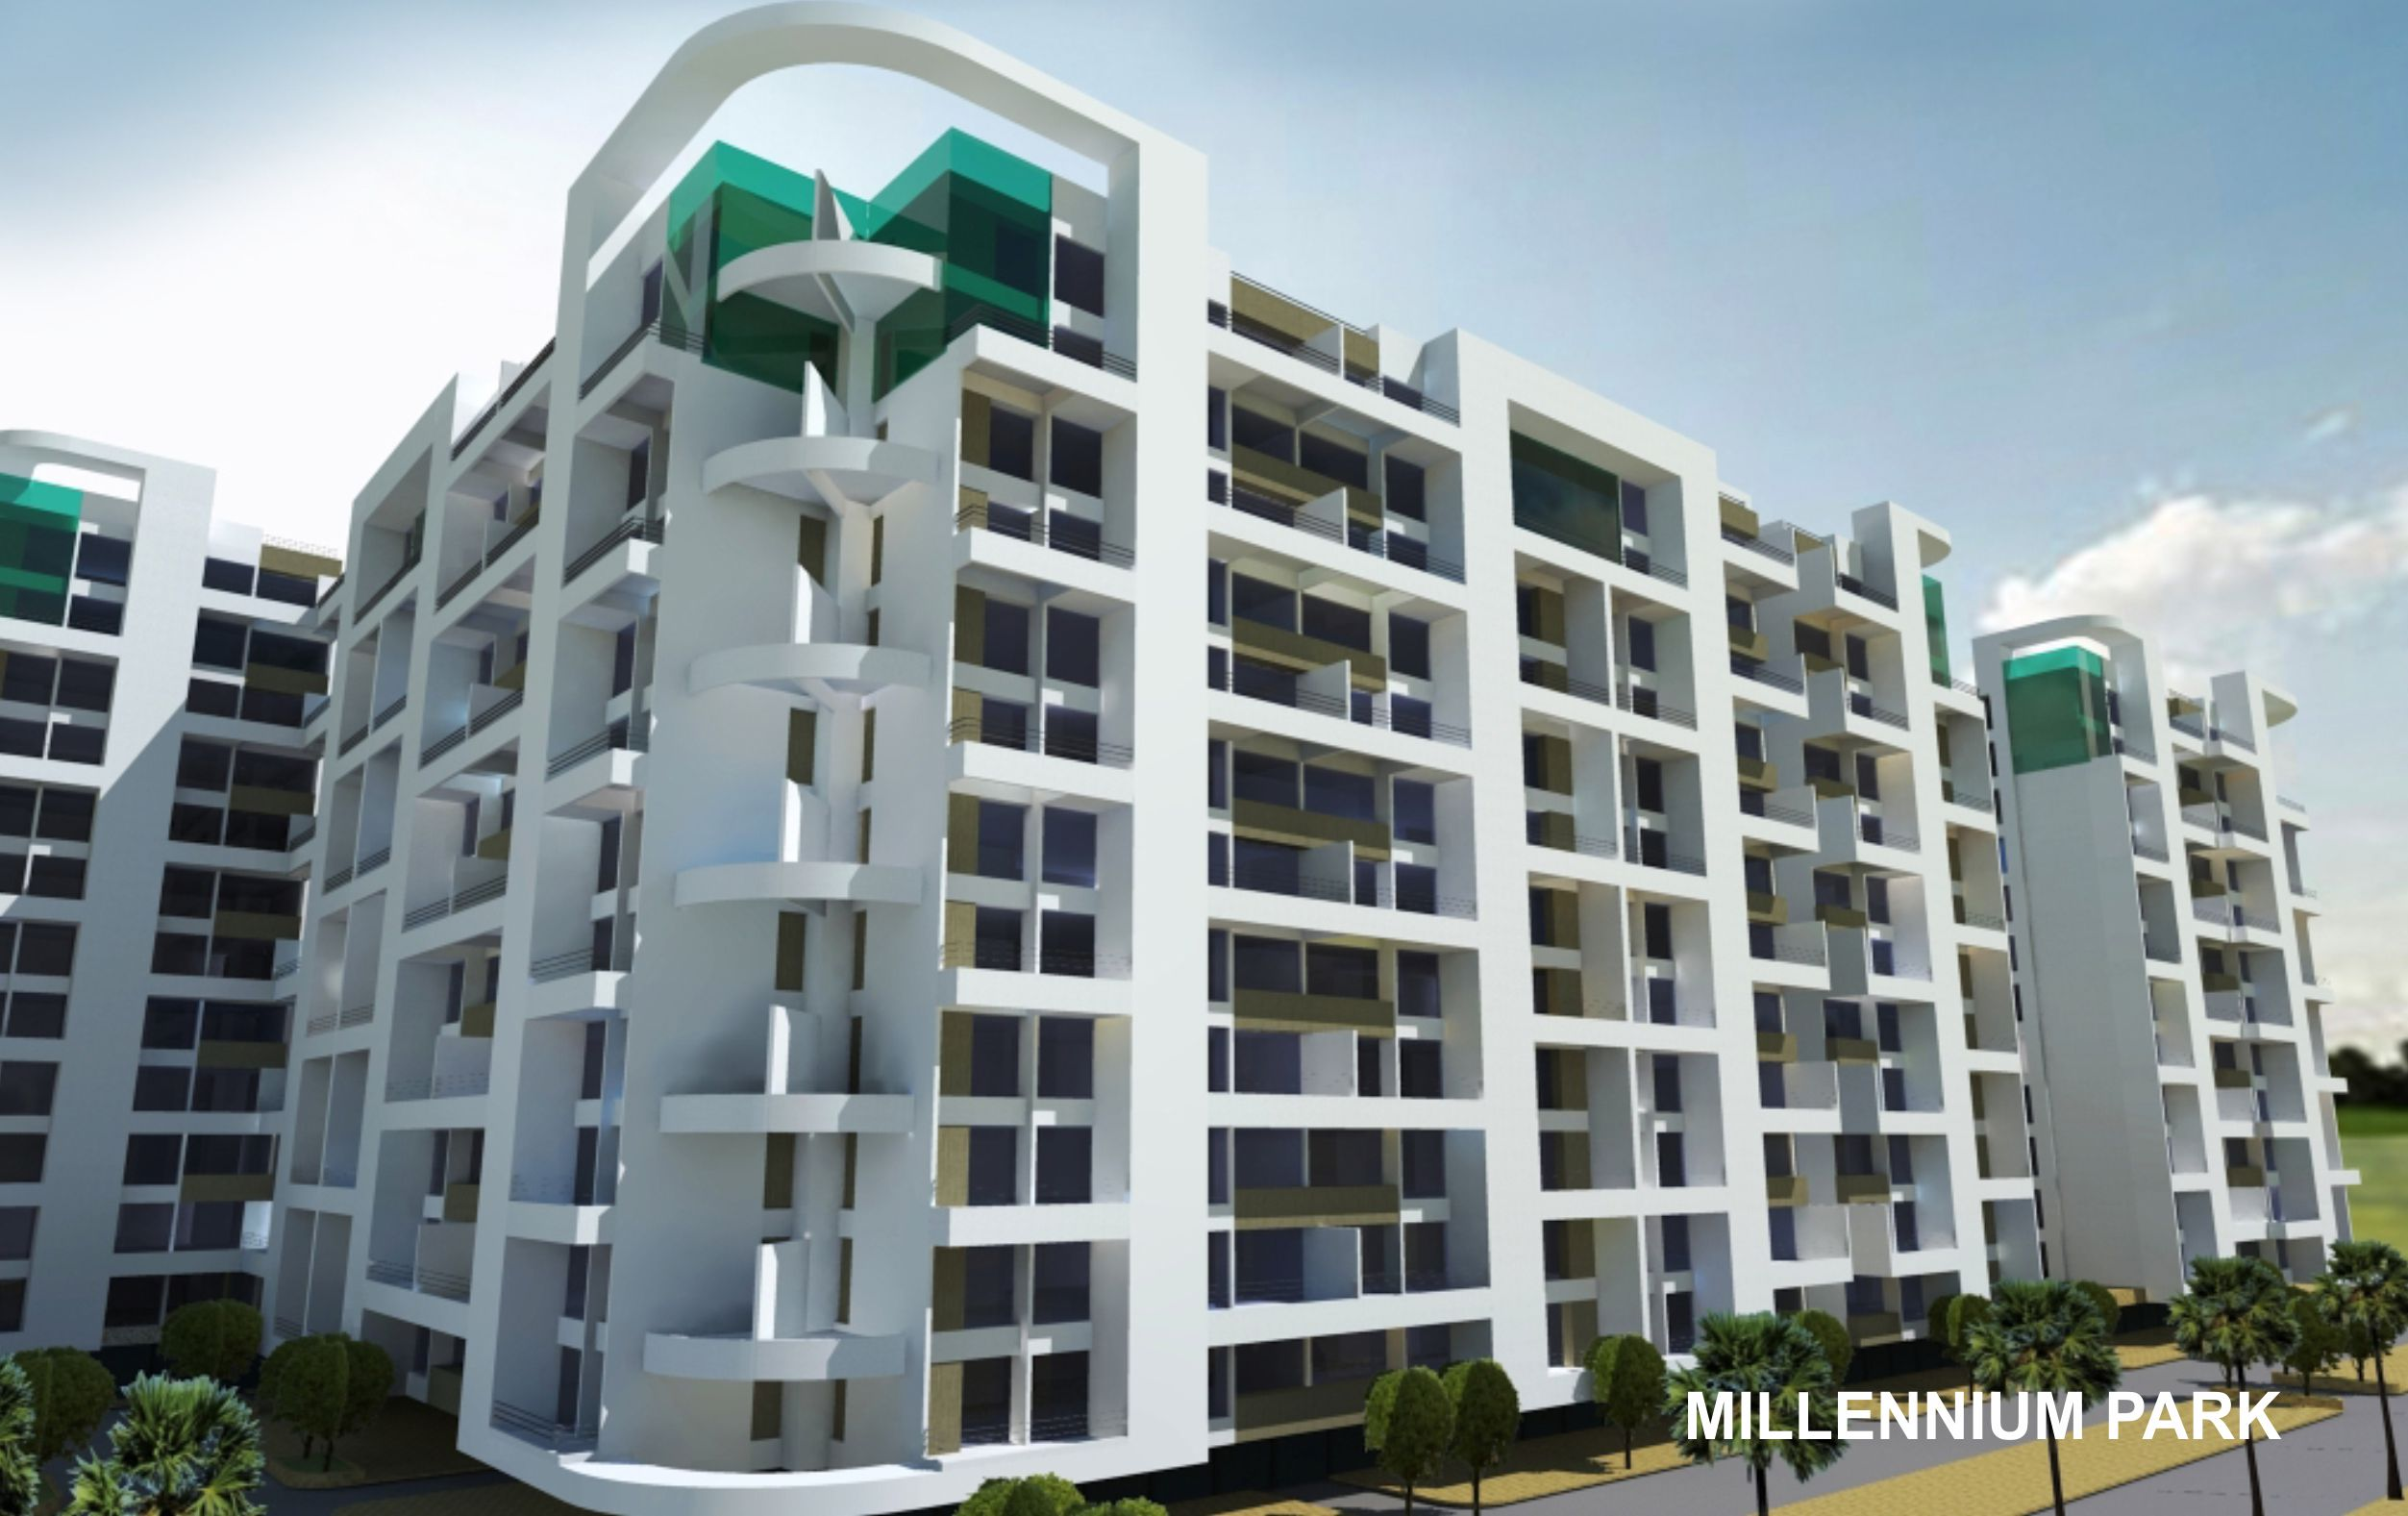 real estate best projects property for sale pride millenium park 1bhk 2 bhk 3 bhk flats at aurangabad